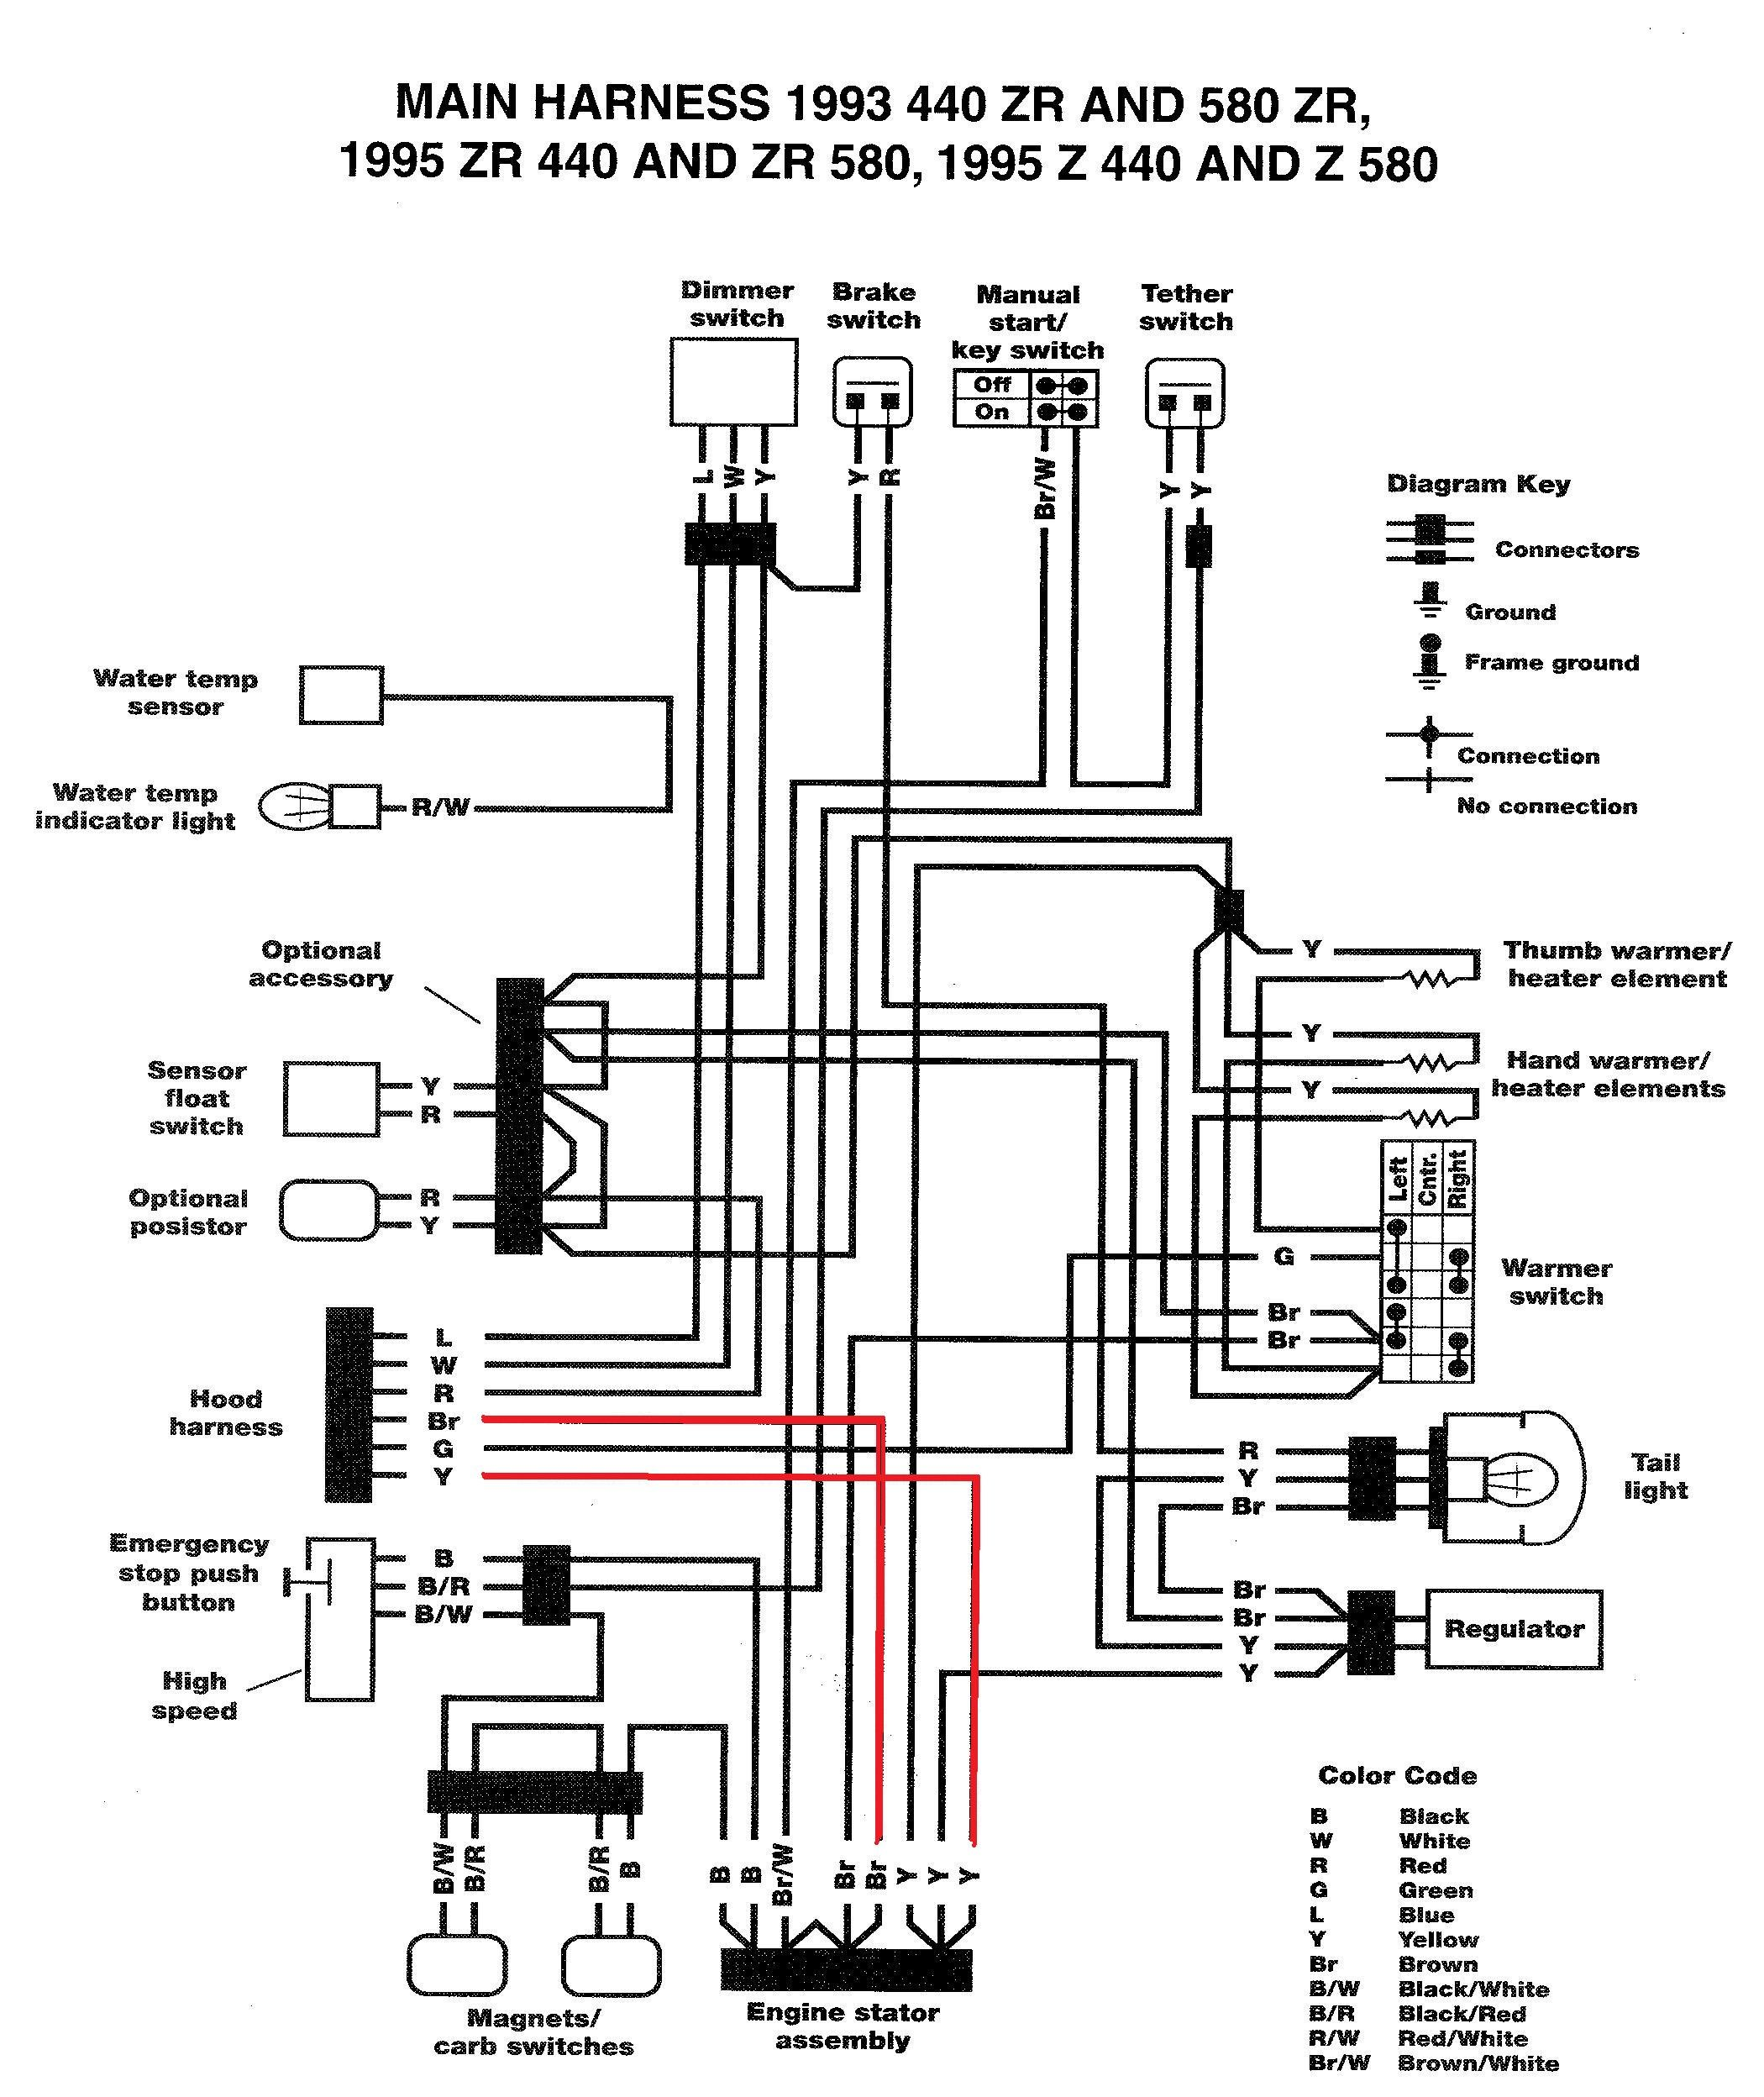 2001 yamaha grizzly 600 wiring diagram roller shutter motor modding quotzr quot to install battery for lighting accessories